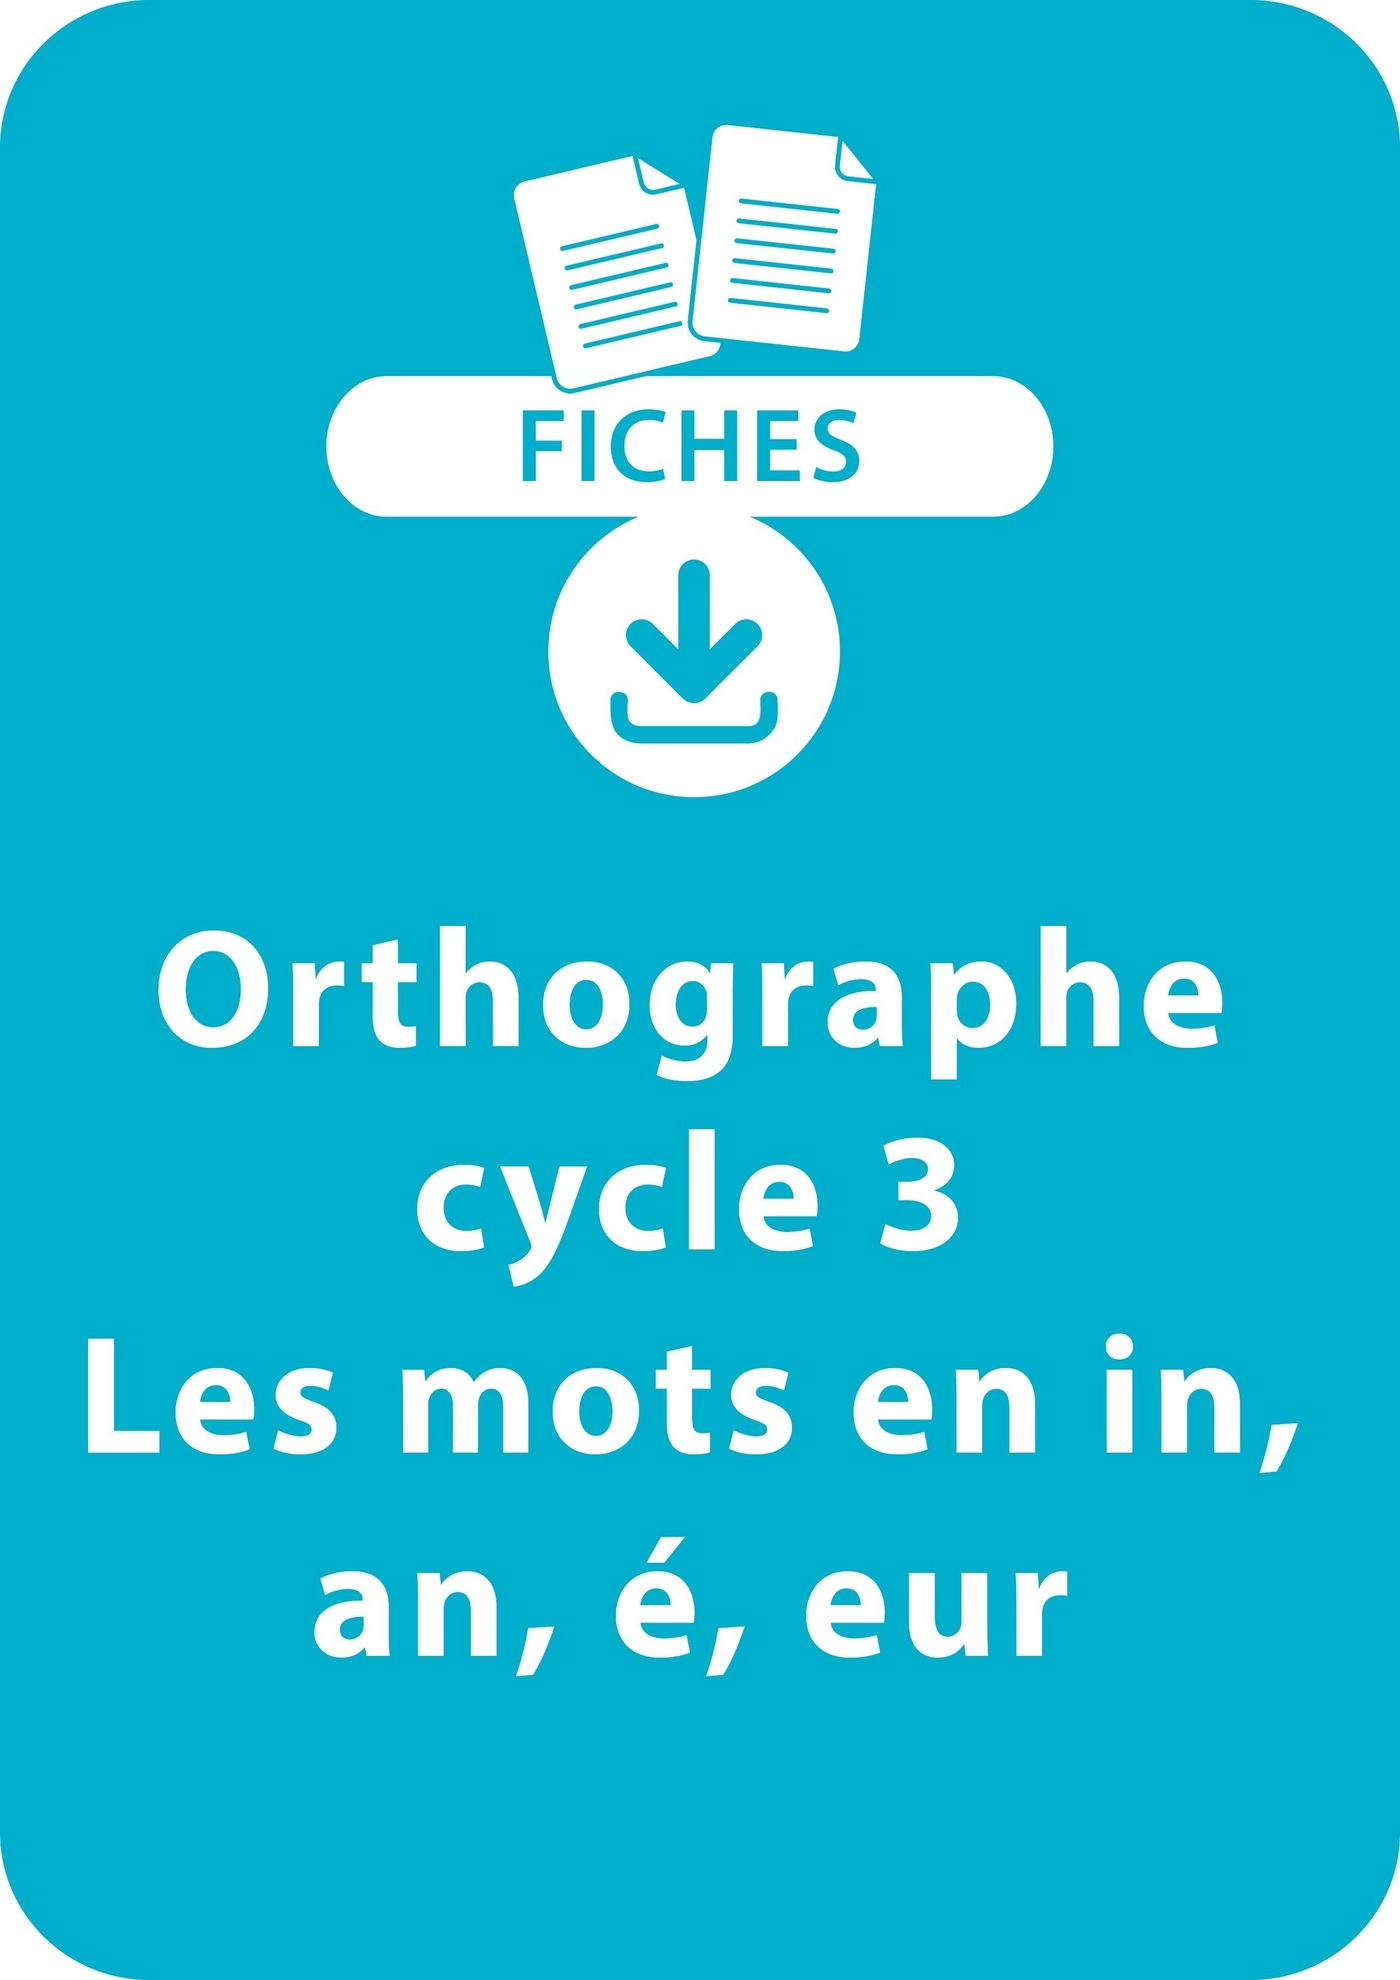 Orthographe Cycle 3 - Les mots en in, an, é, eur